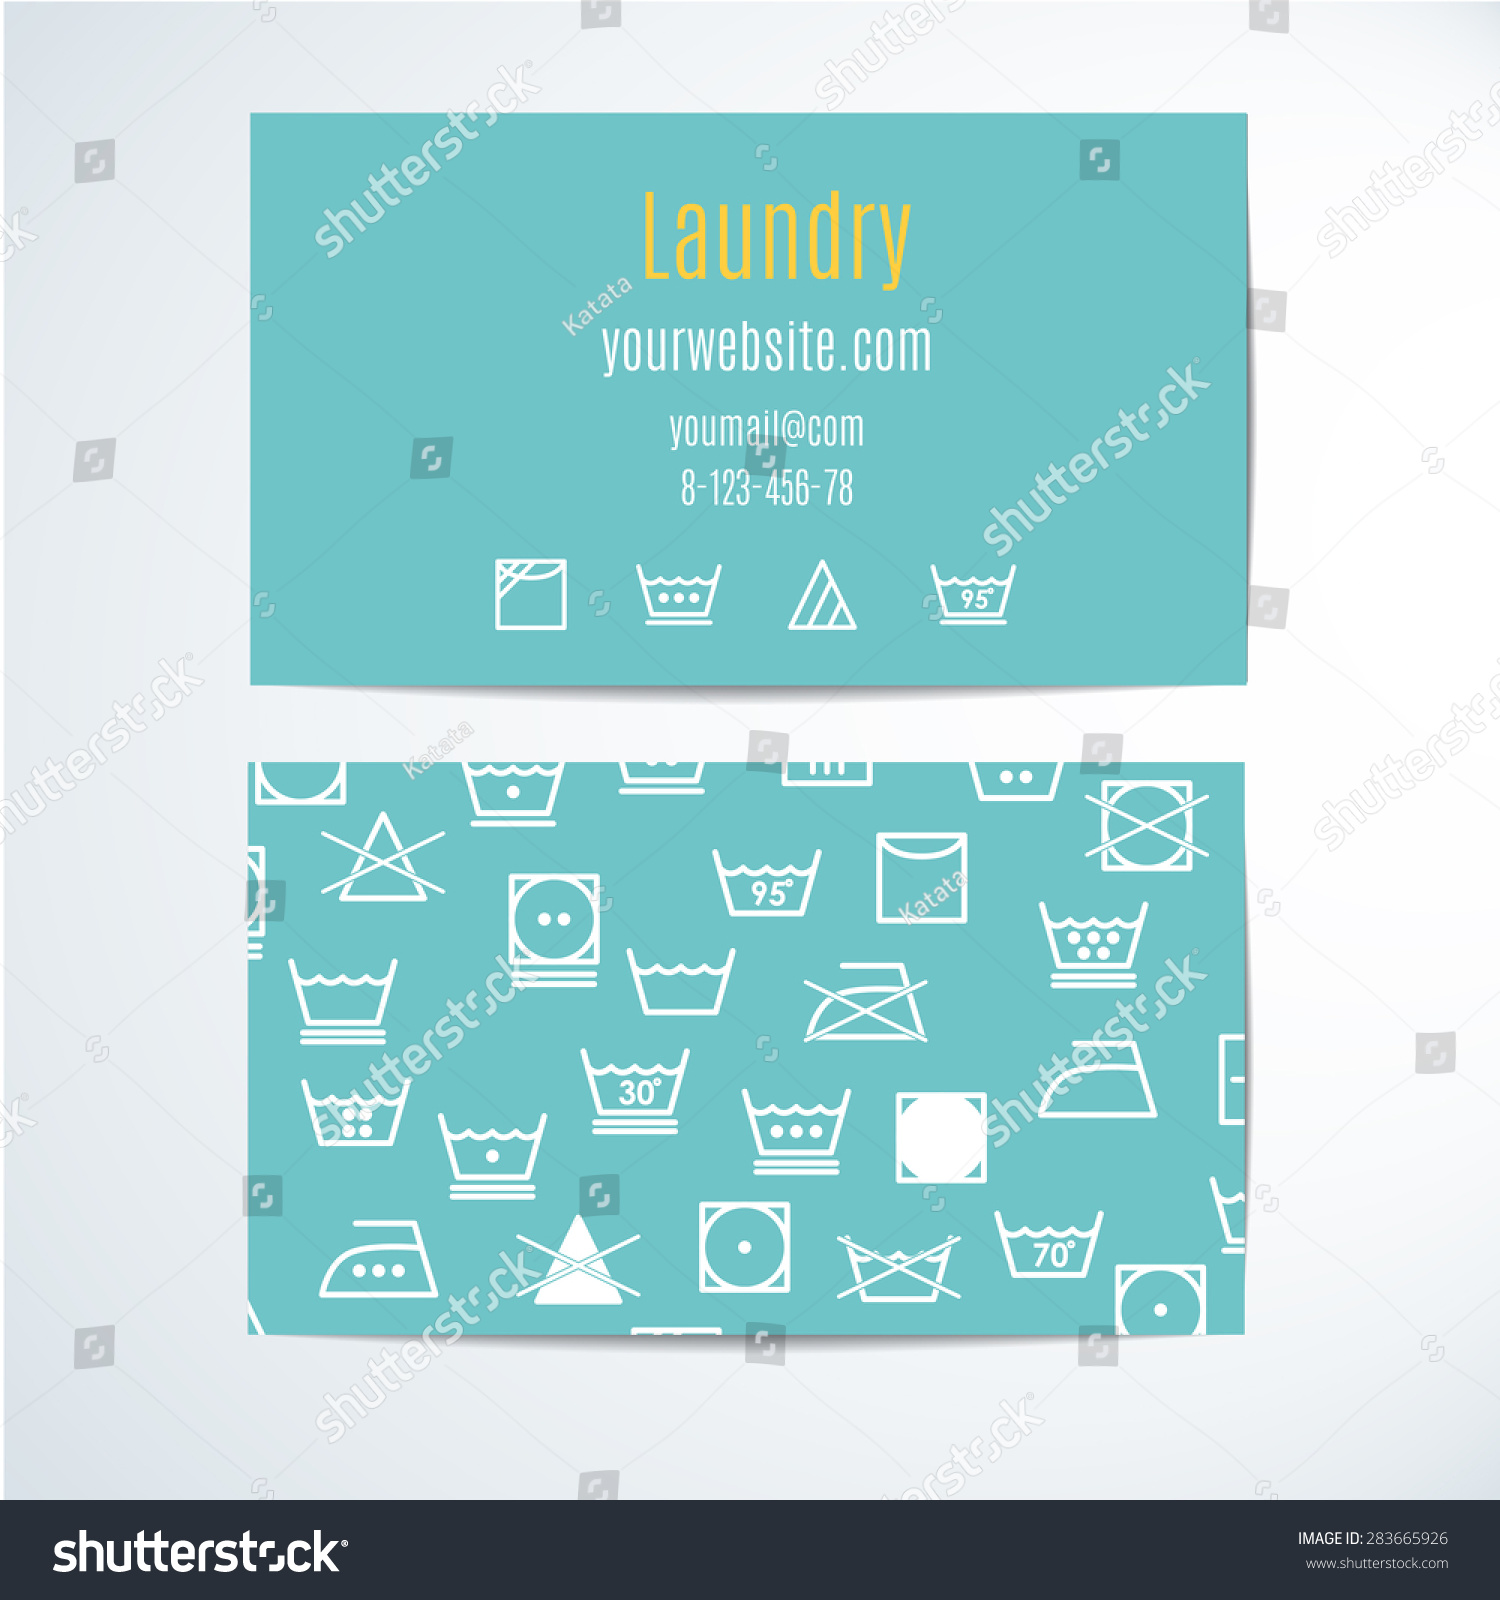 Template Business Cards Symbols Laundry Garment Stock Vector